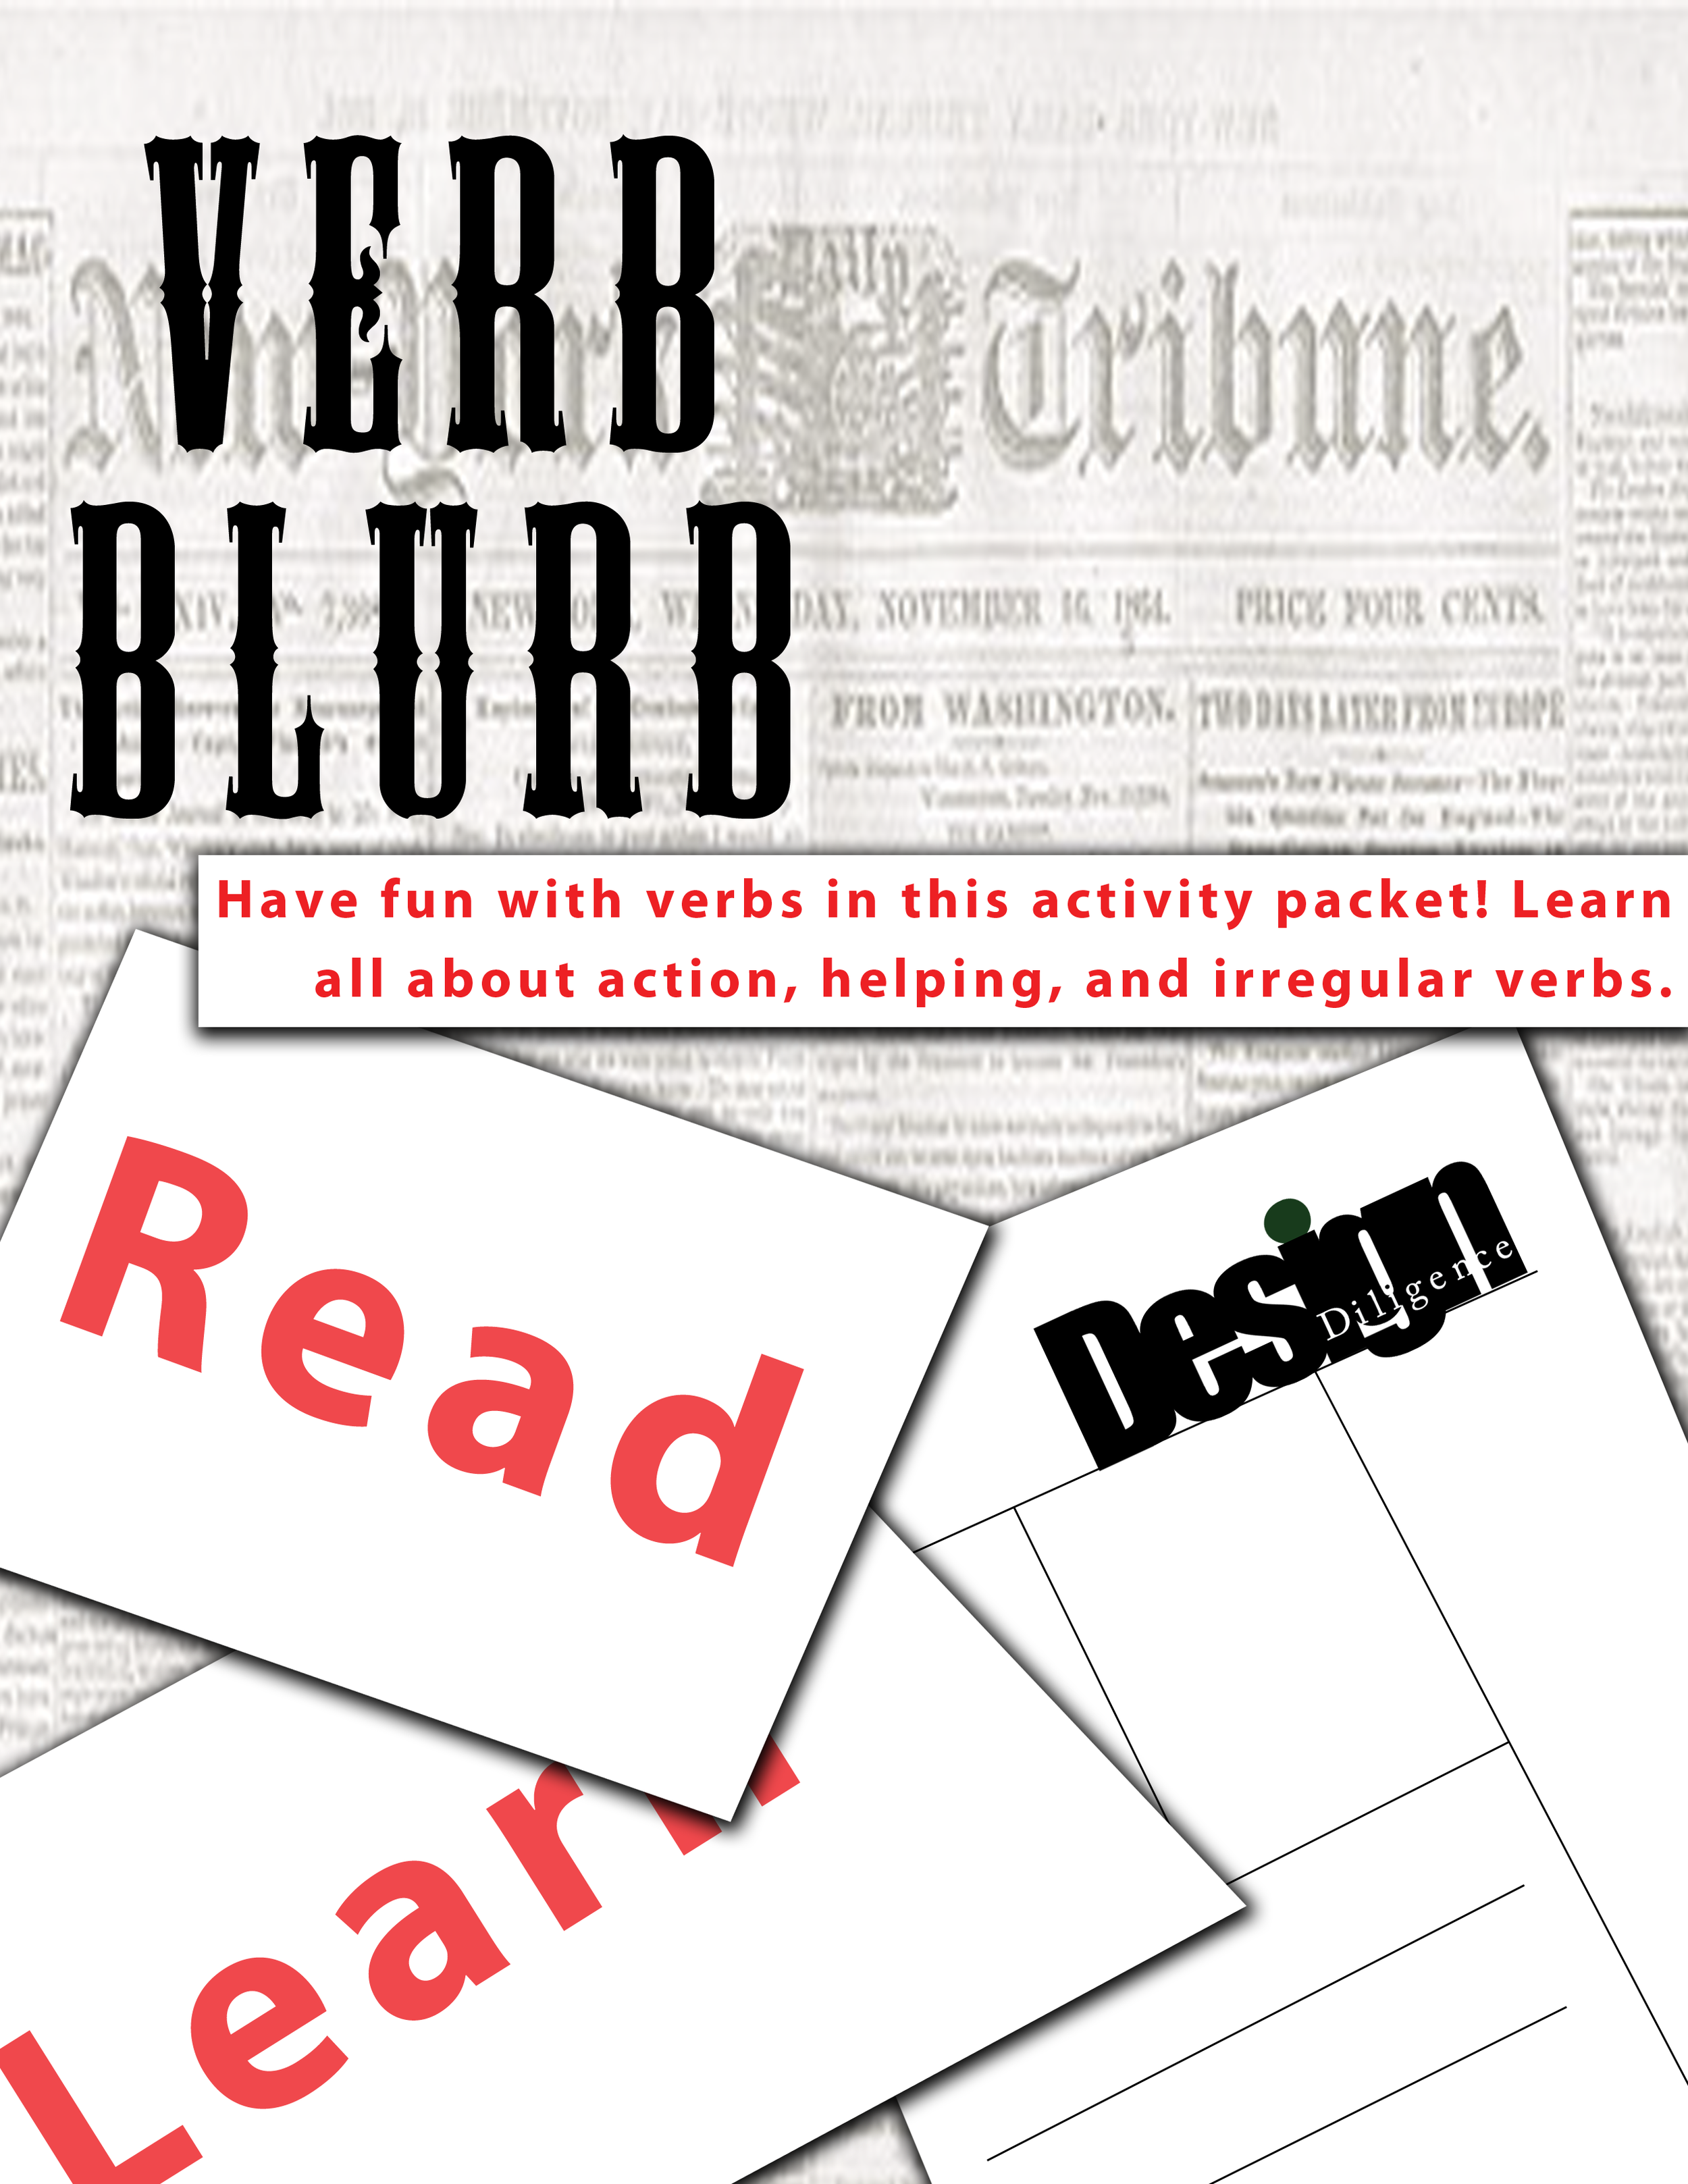 VERB BLURB